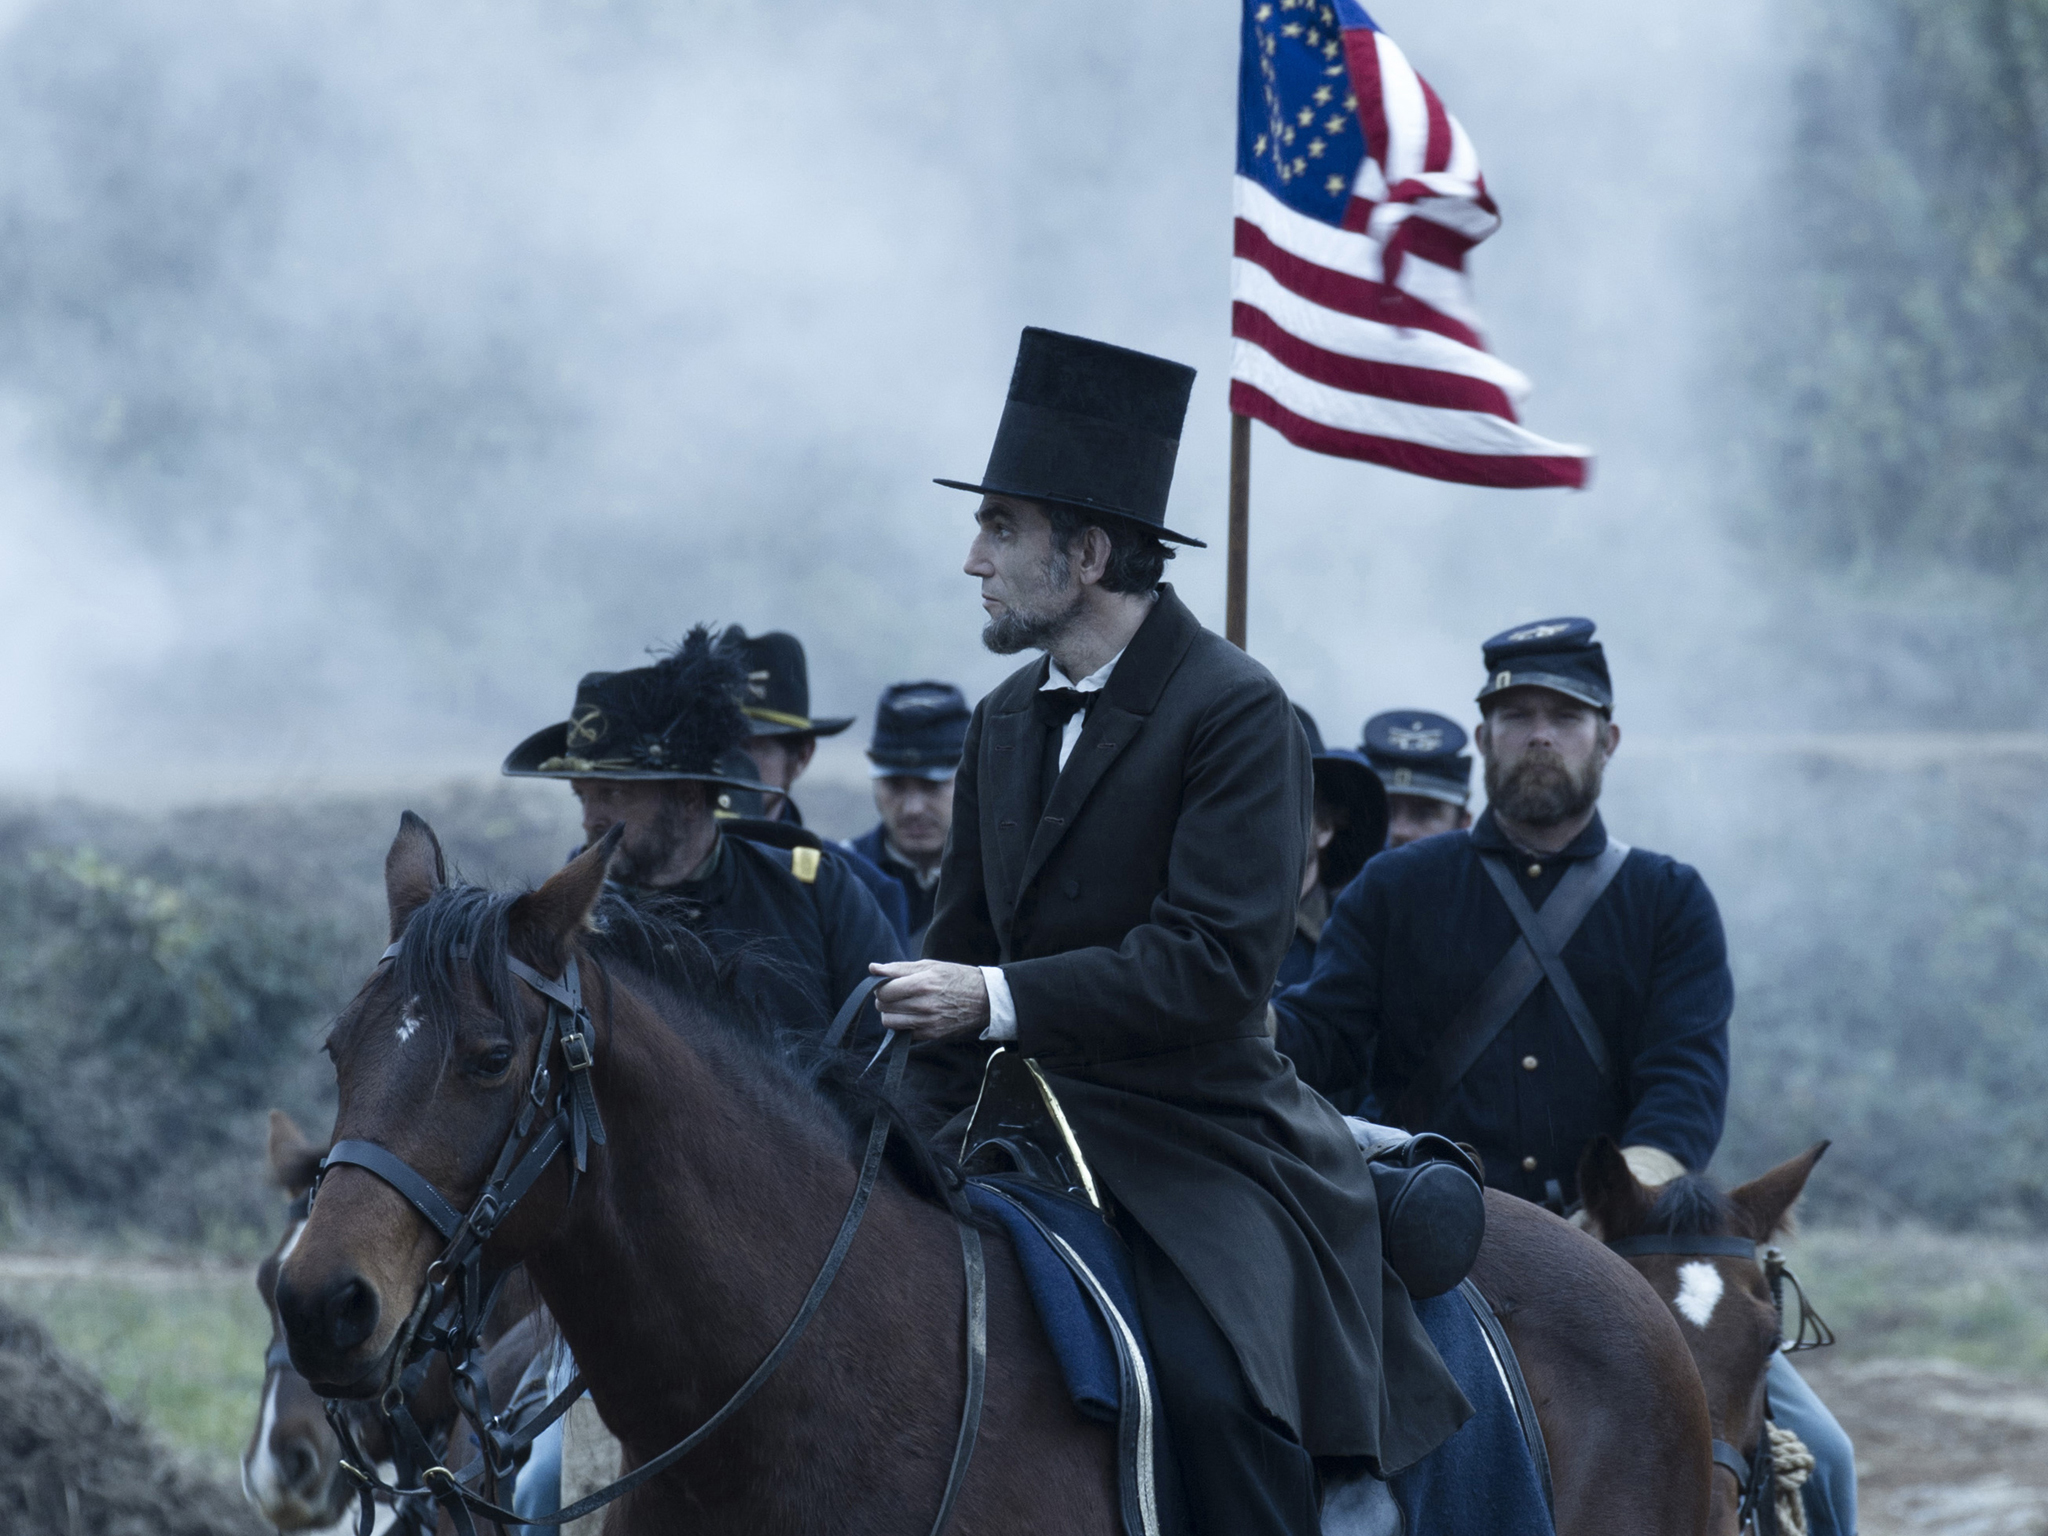 Steven Spielberg movies, Lincoln